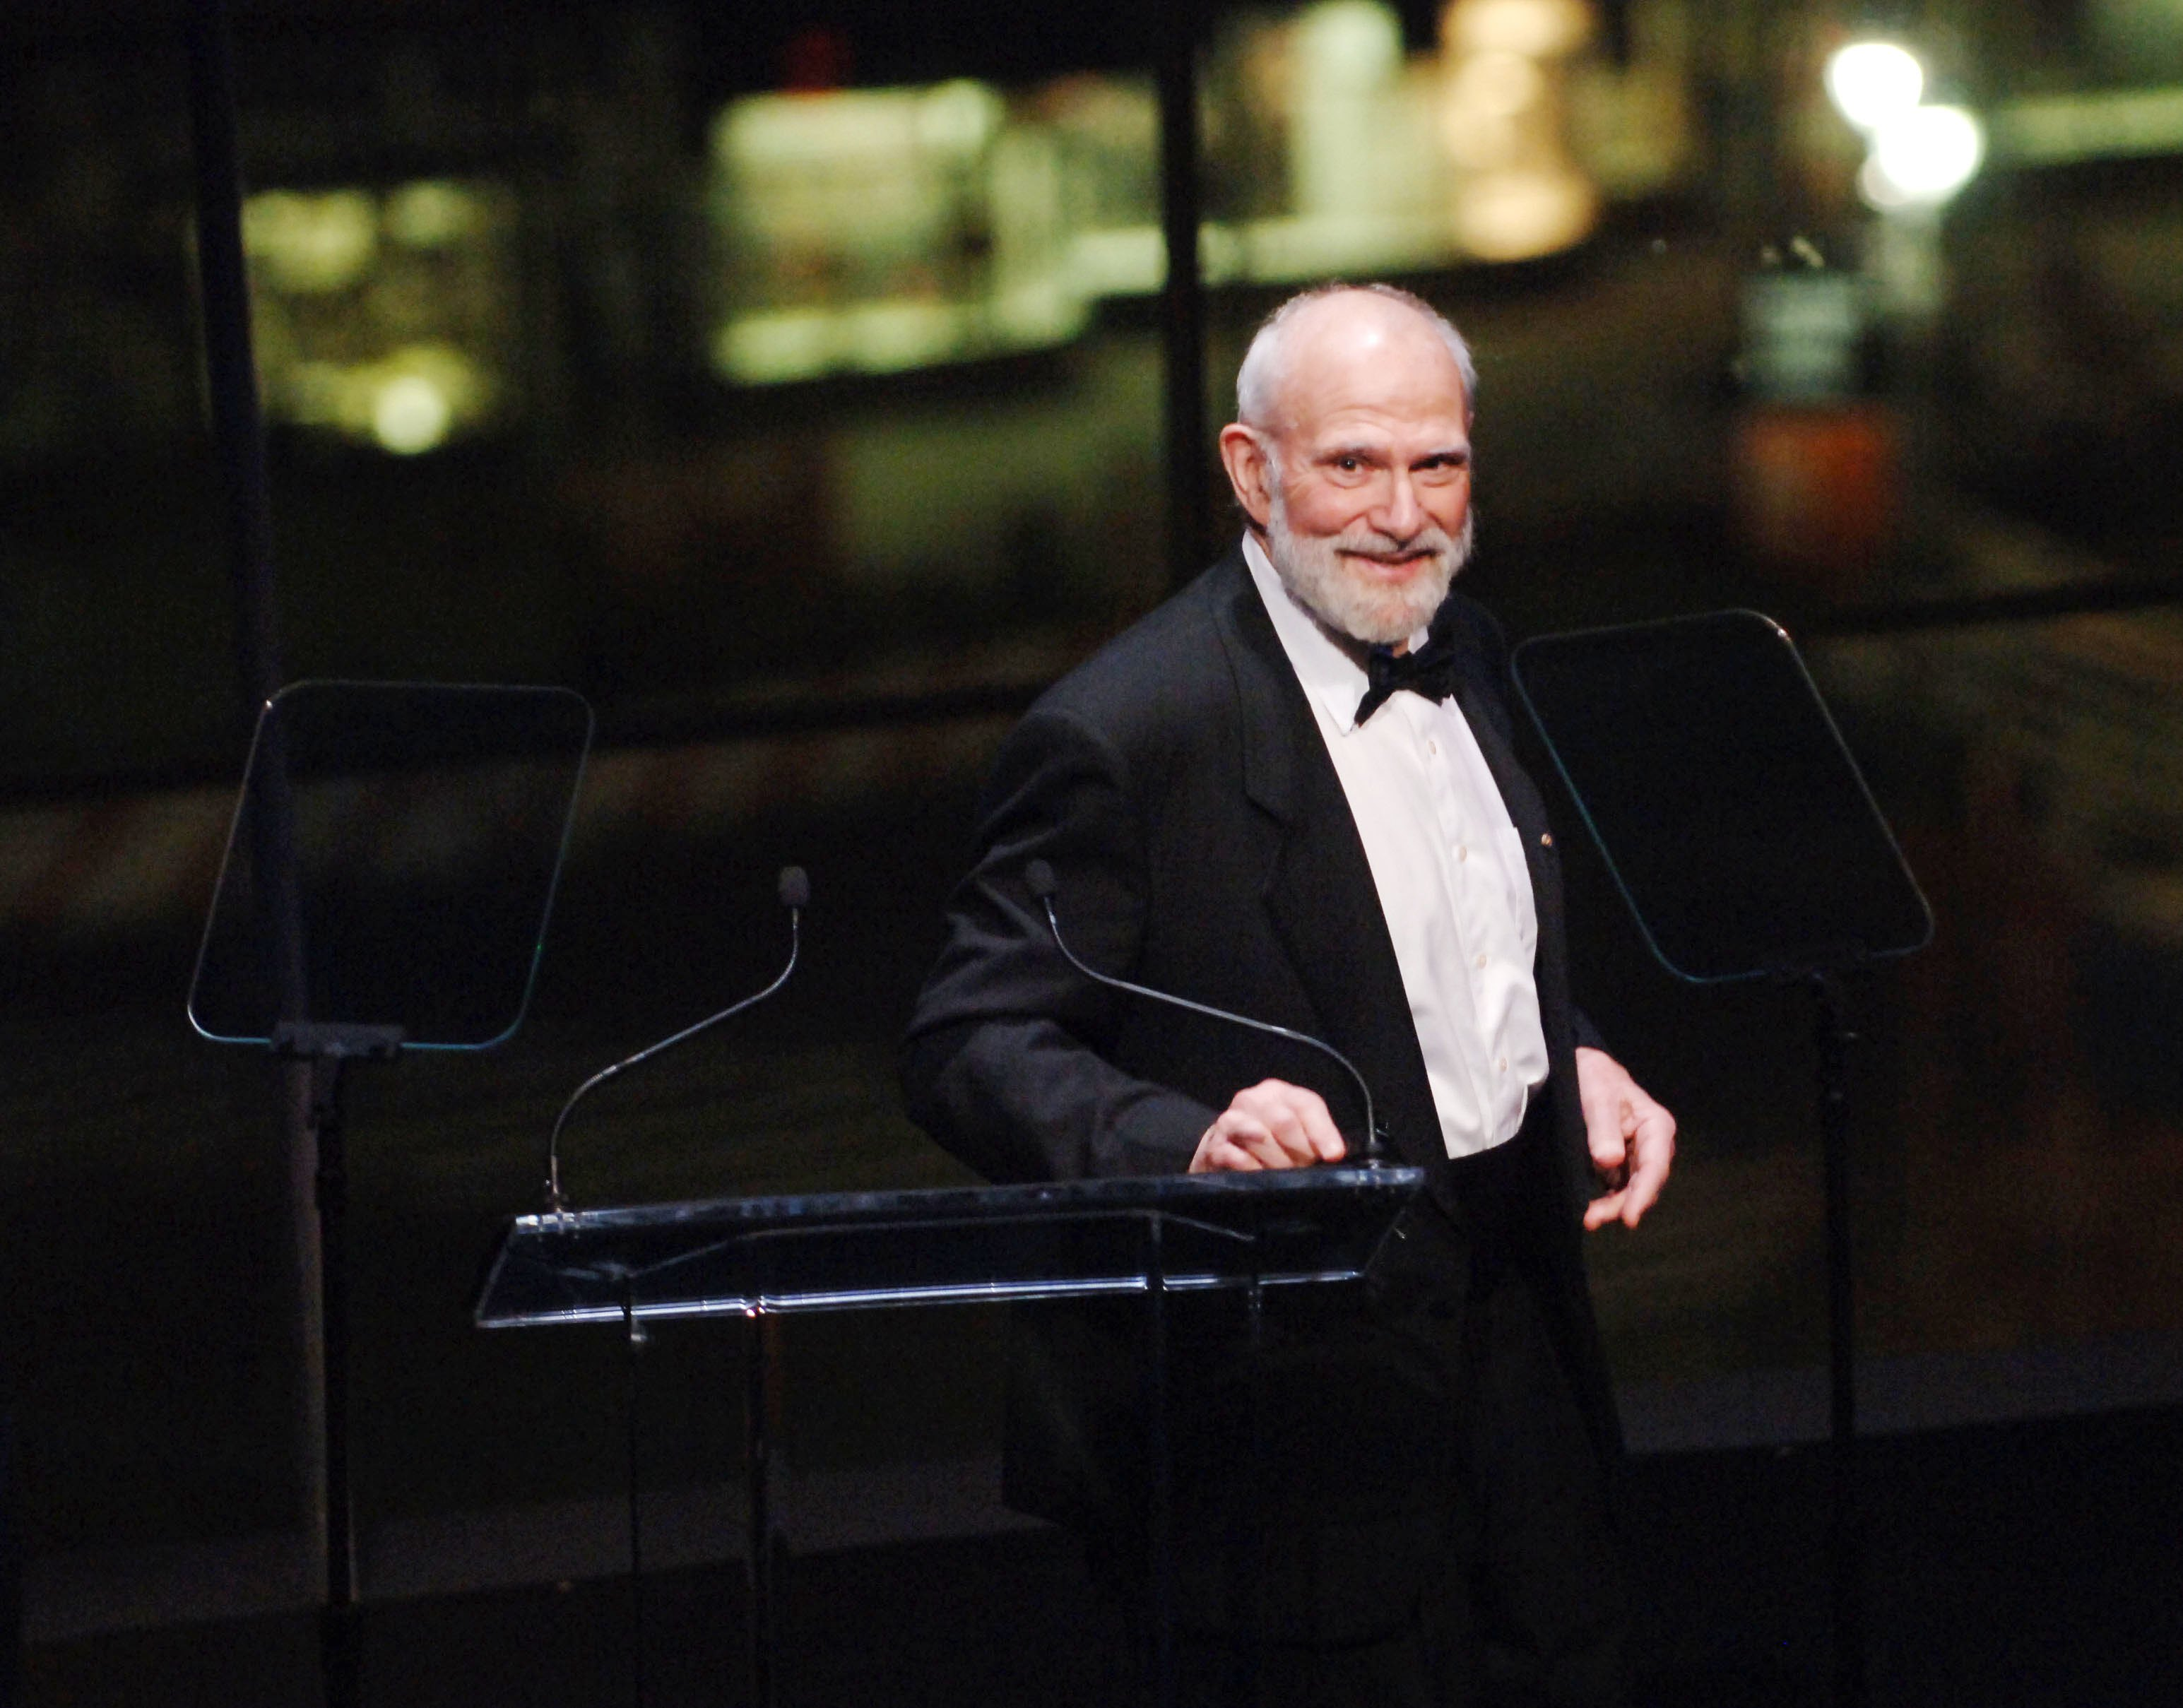 Dr. Oliver Sacks speaks at the Music Has Power Awards Benefit in the Allen Room at the Frederick P. Rose Hall, Home of Jazz at Lincoln Center on Nov. 6, 2006 in New York City.